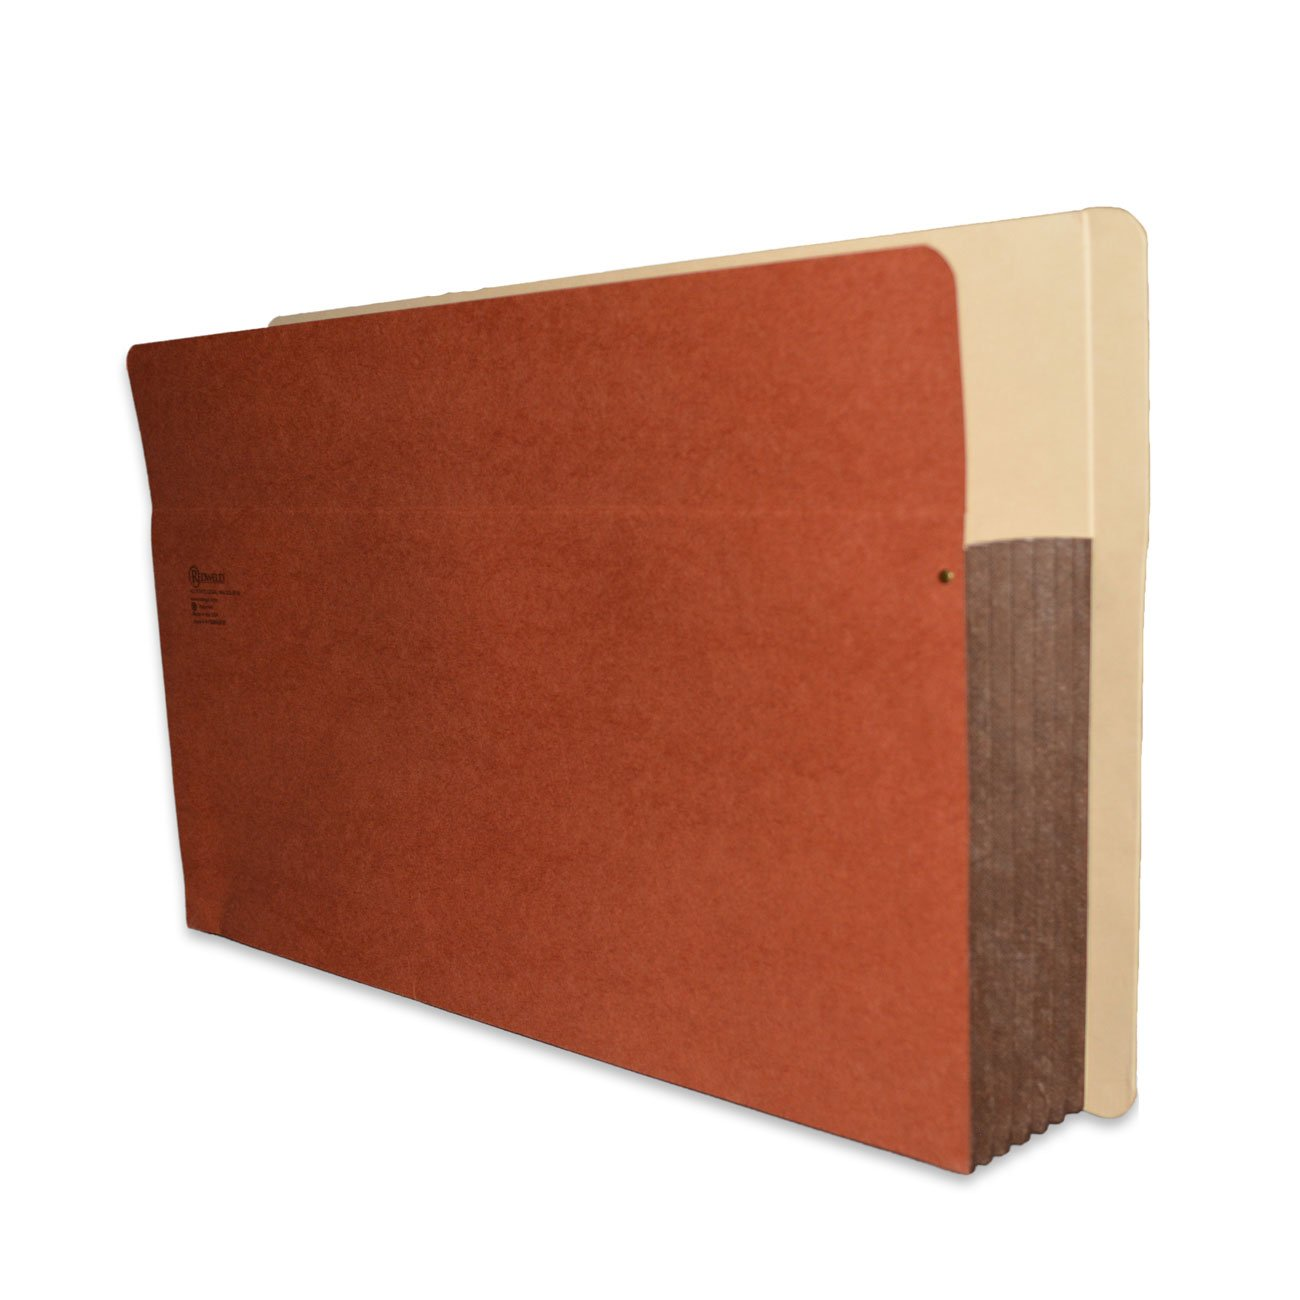 Redweld End Tab File Pocket, Extra Large Legal Size with 5 1/4'' Fully Reinforced Tyvek Gusset, 25 per Carton